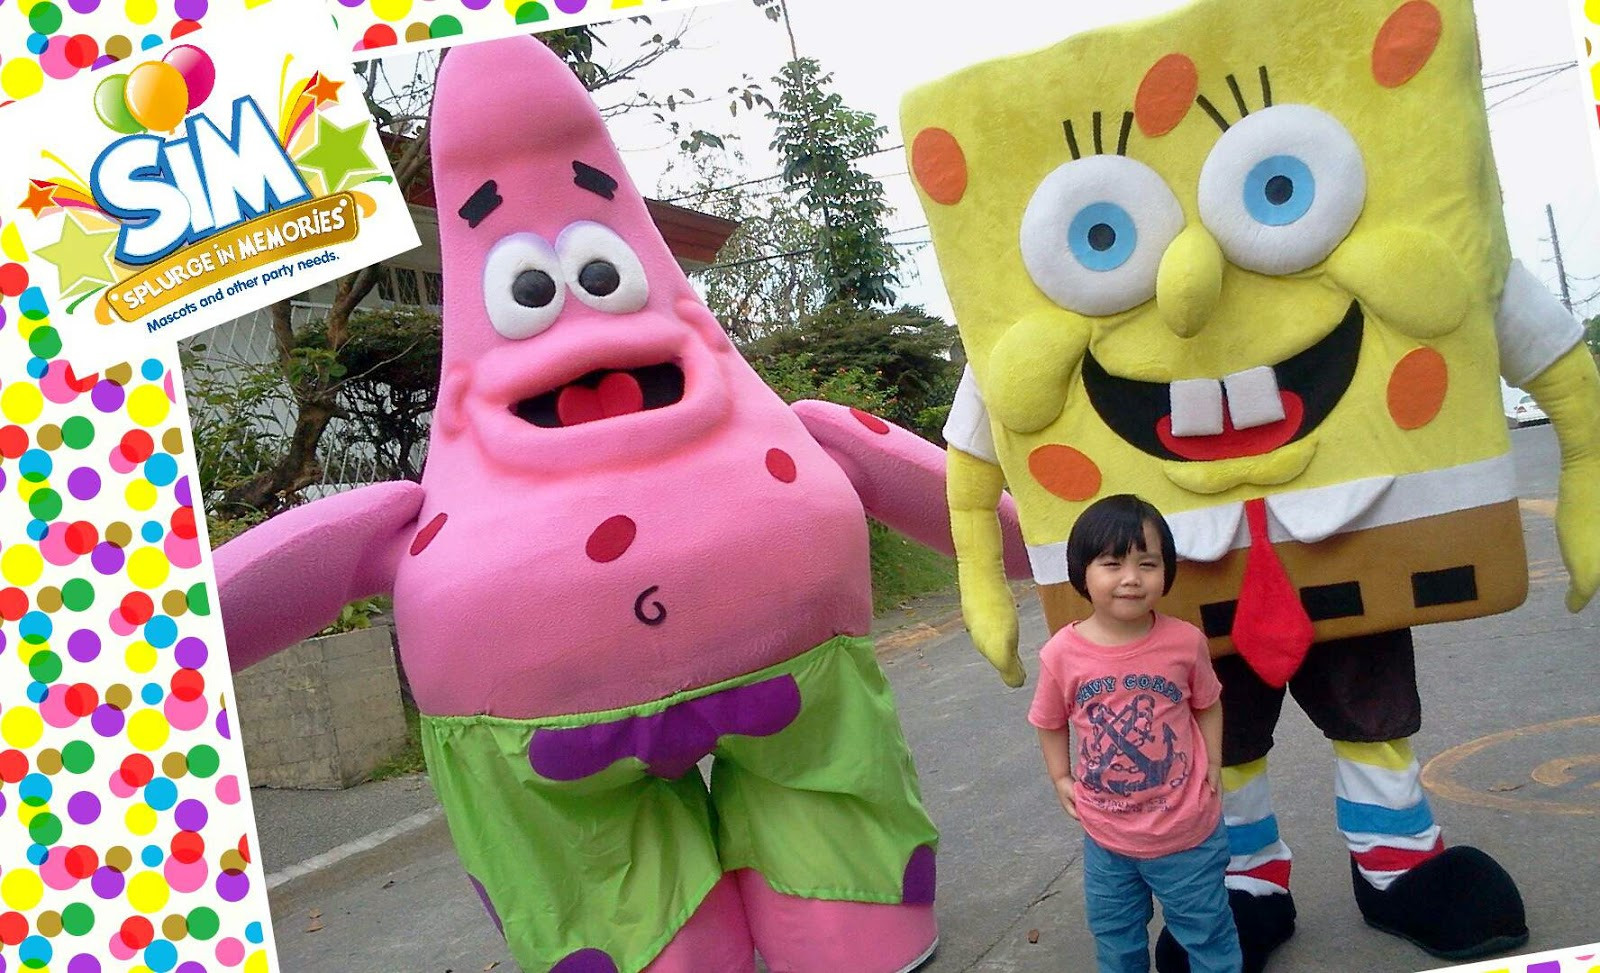 Rina's Rainbow: Splurge in Memories: Mascots For Your Special Parties!